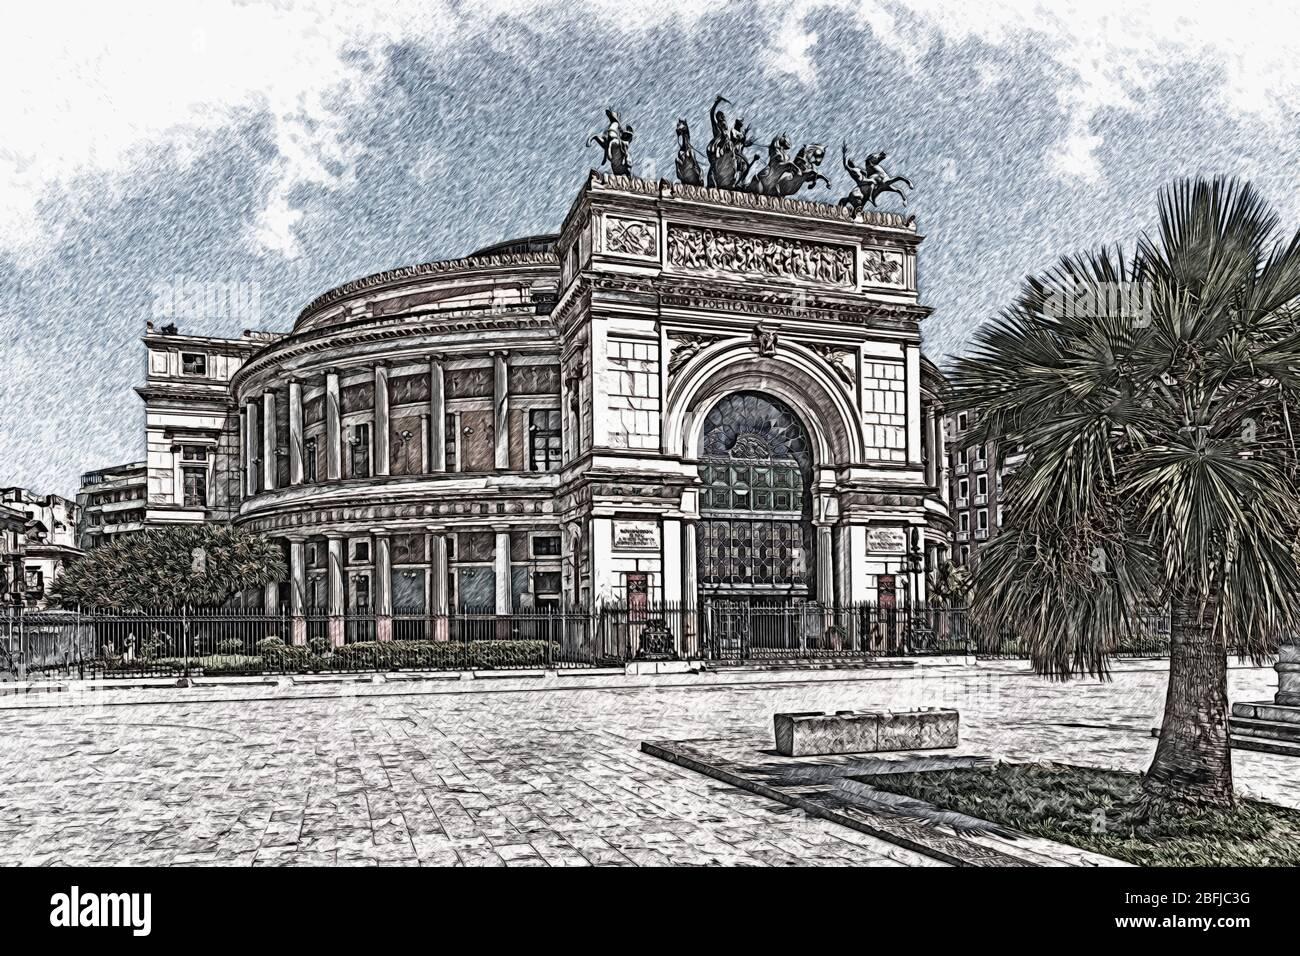 The Teatro Politeama or Teatro Politeama Garibaldi is a theater building in Palermo, Sicily, Italy, Europe Stock Photo